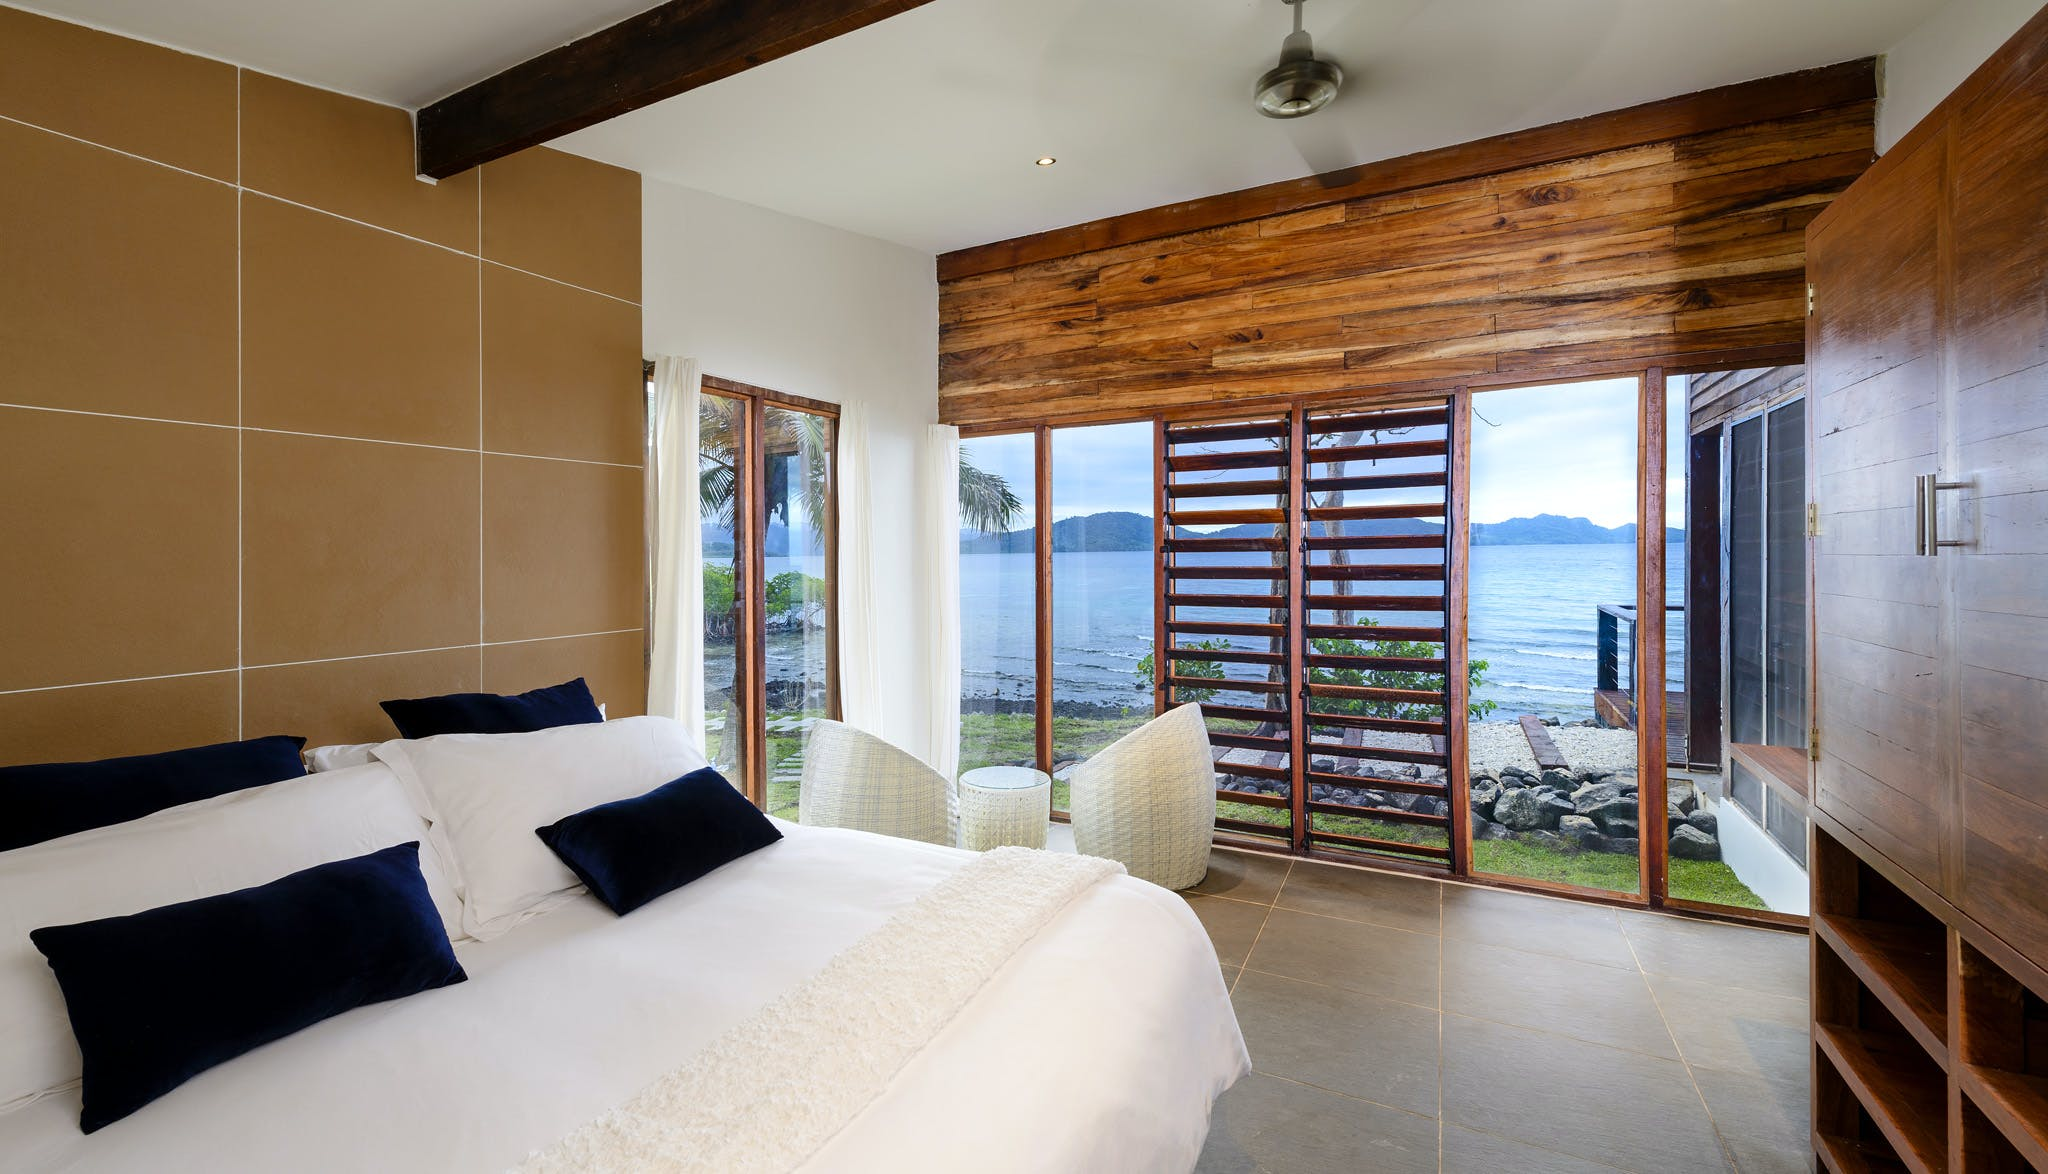 King bed in Two-bedroom Villa at The Remote Resort Fiji Islands.  Oceanfront,  plunge pool, family accommodation